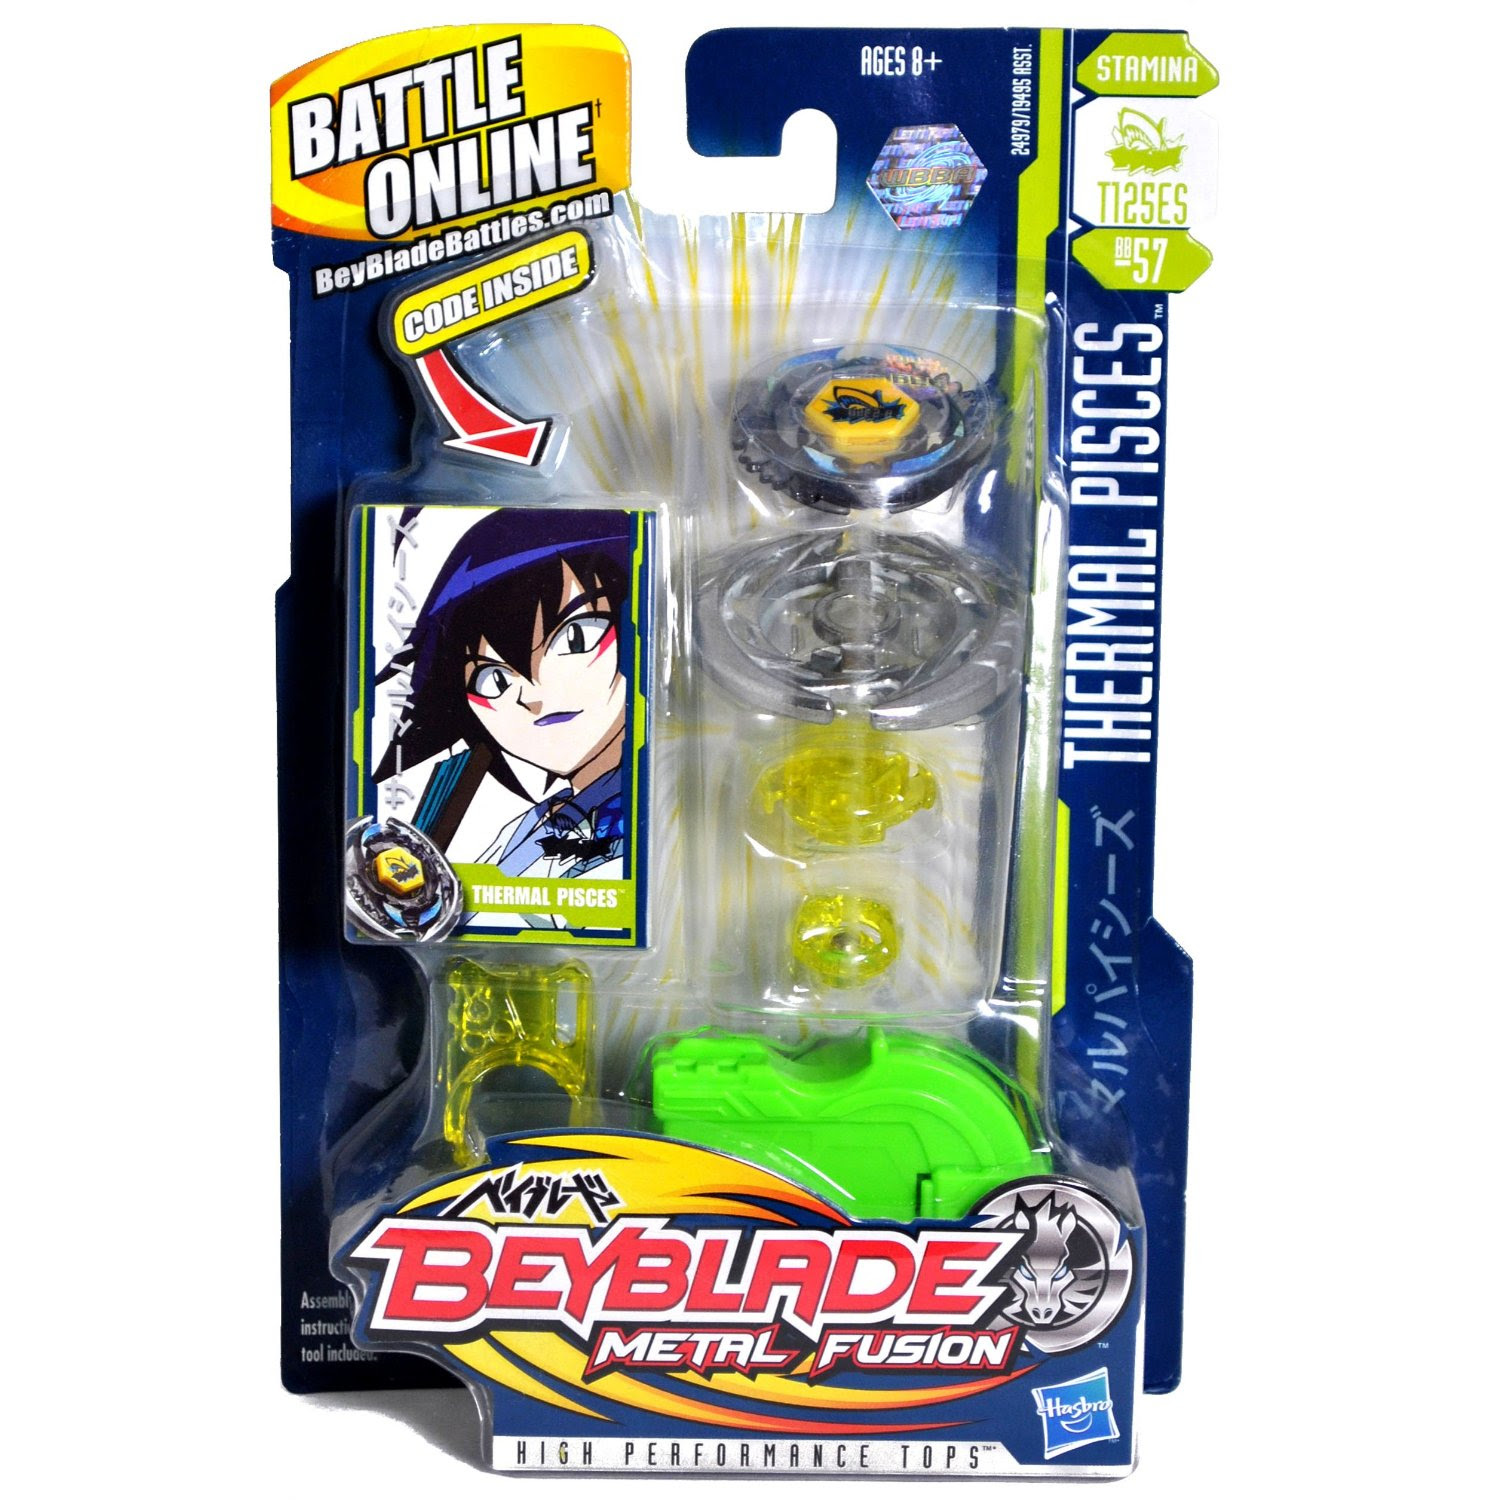 Thermal Pisces T125ES   Beyblade Wiki   FANDOM powered by ...